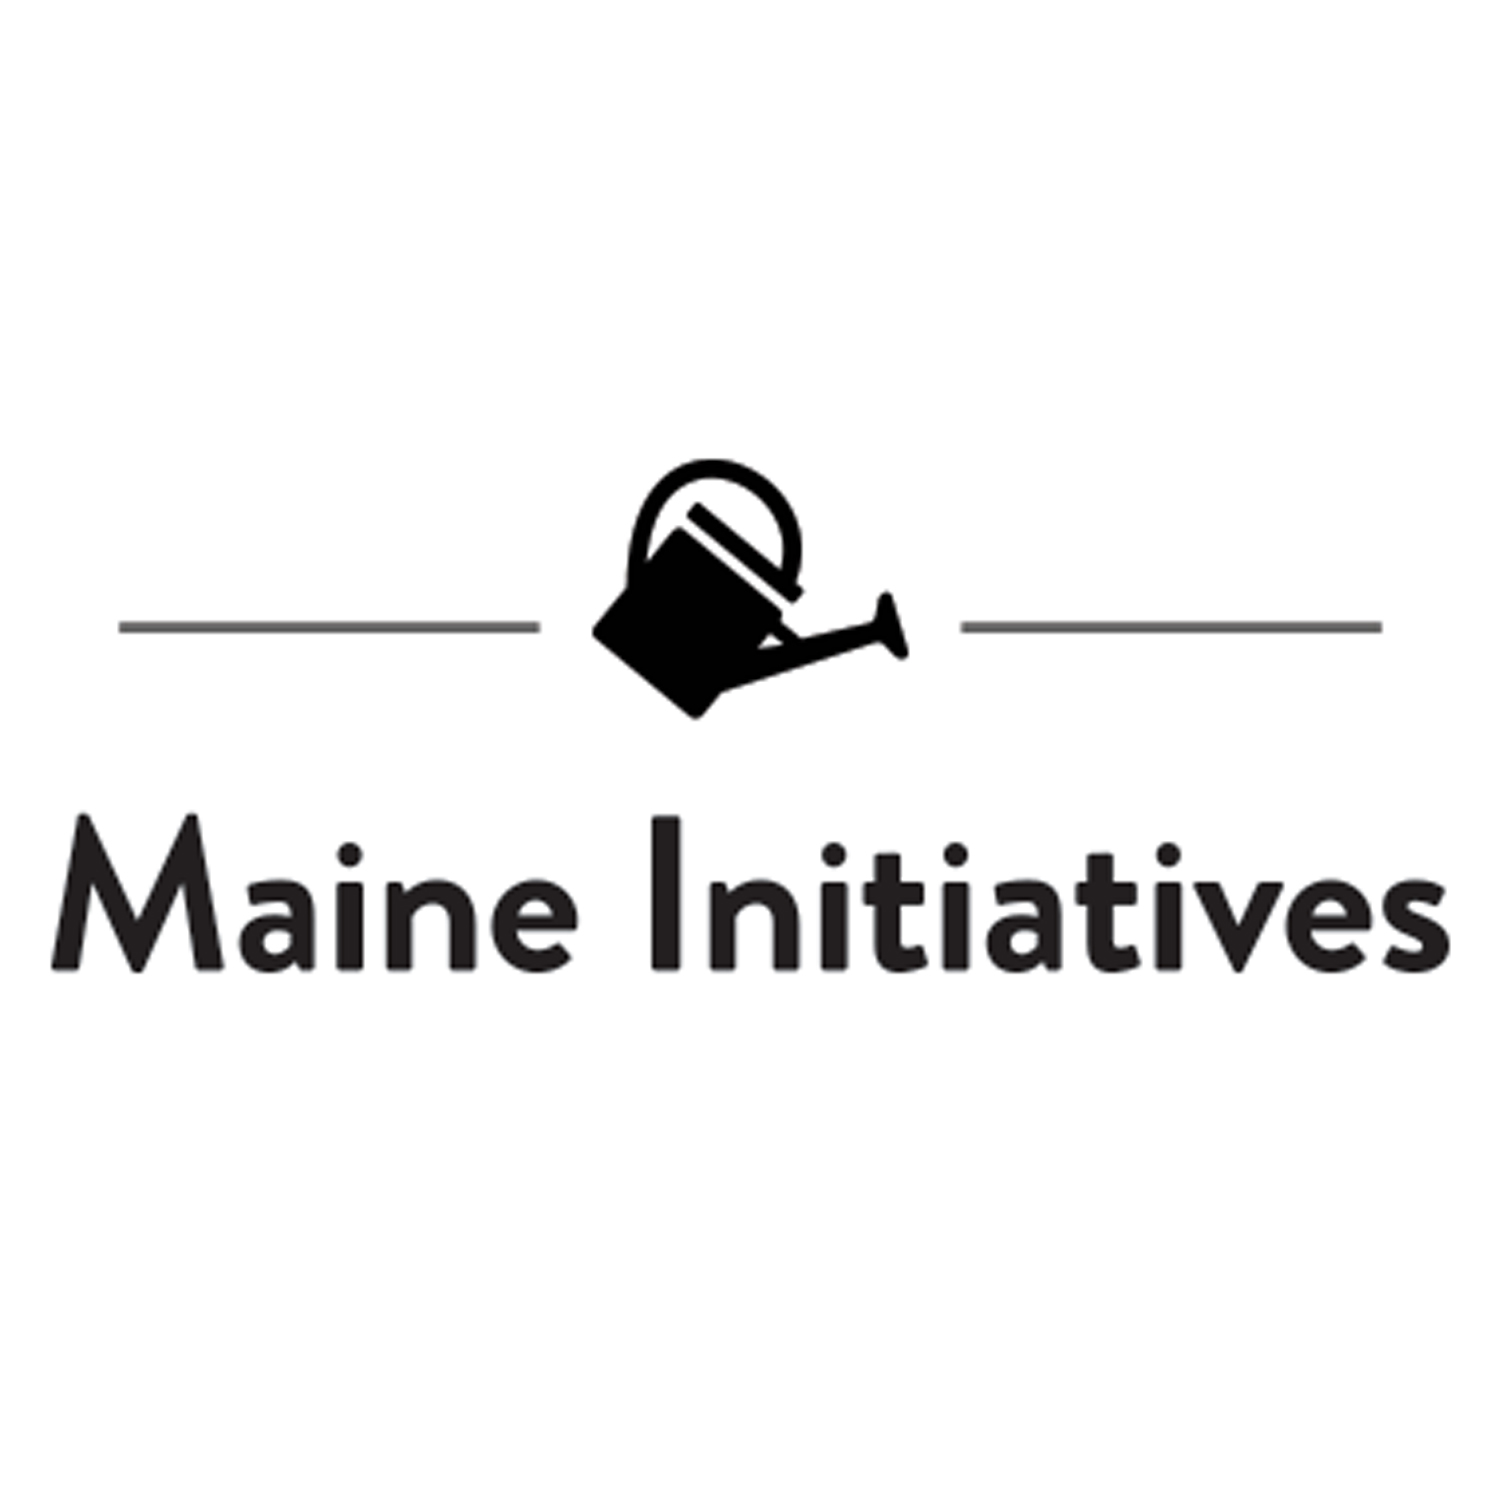 maine initiatives.jpg